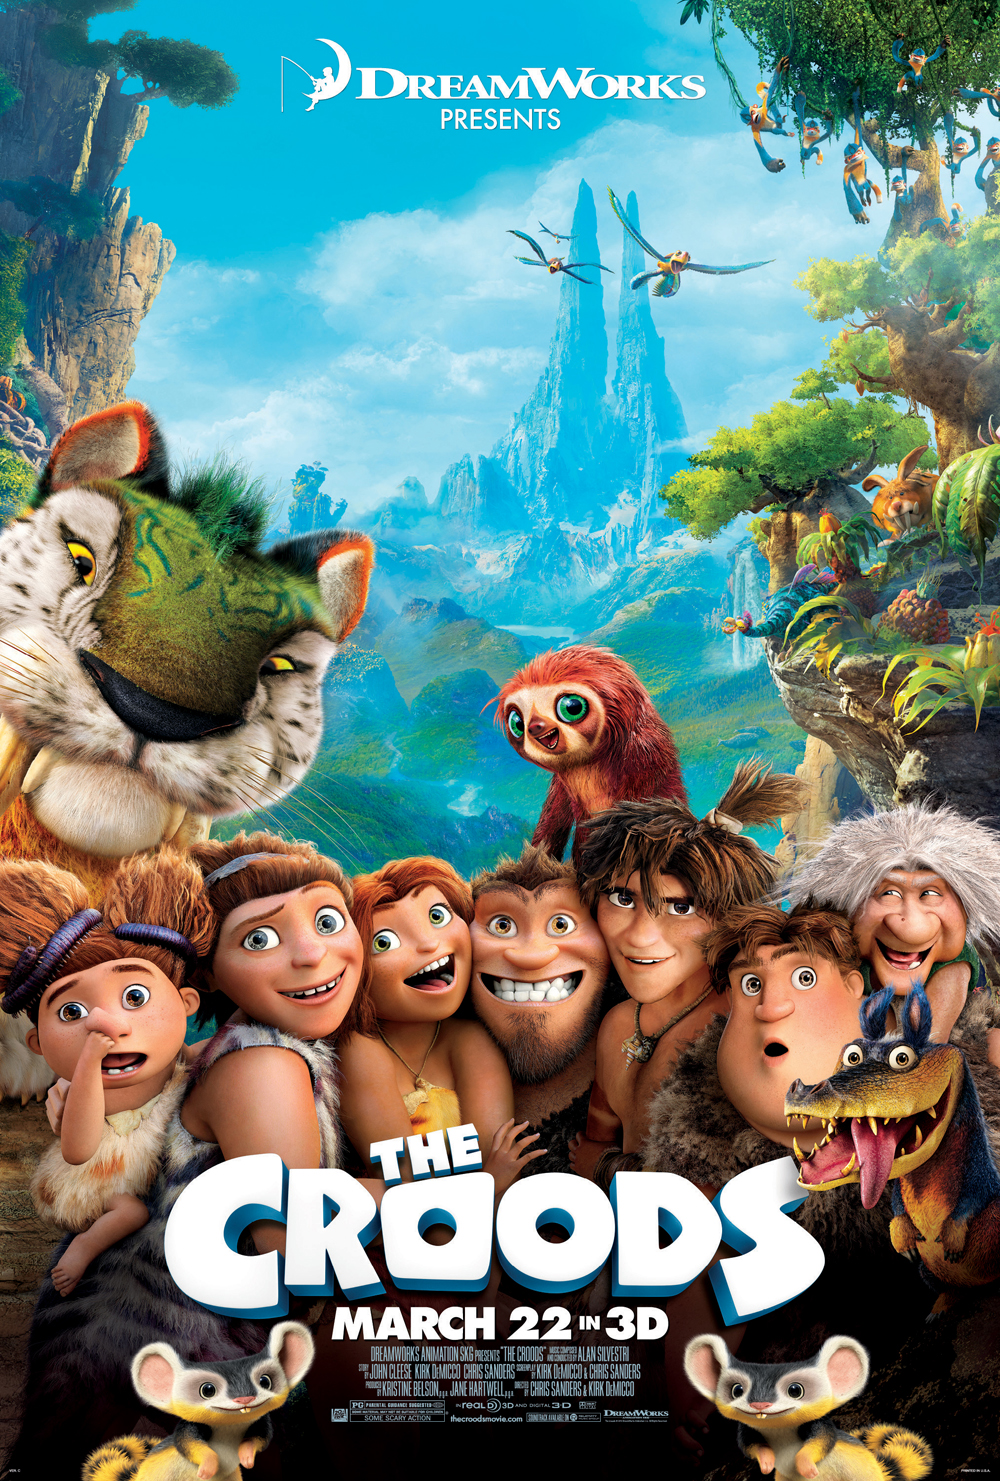 New 'Croods' Posters Reveal Cool Critters